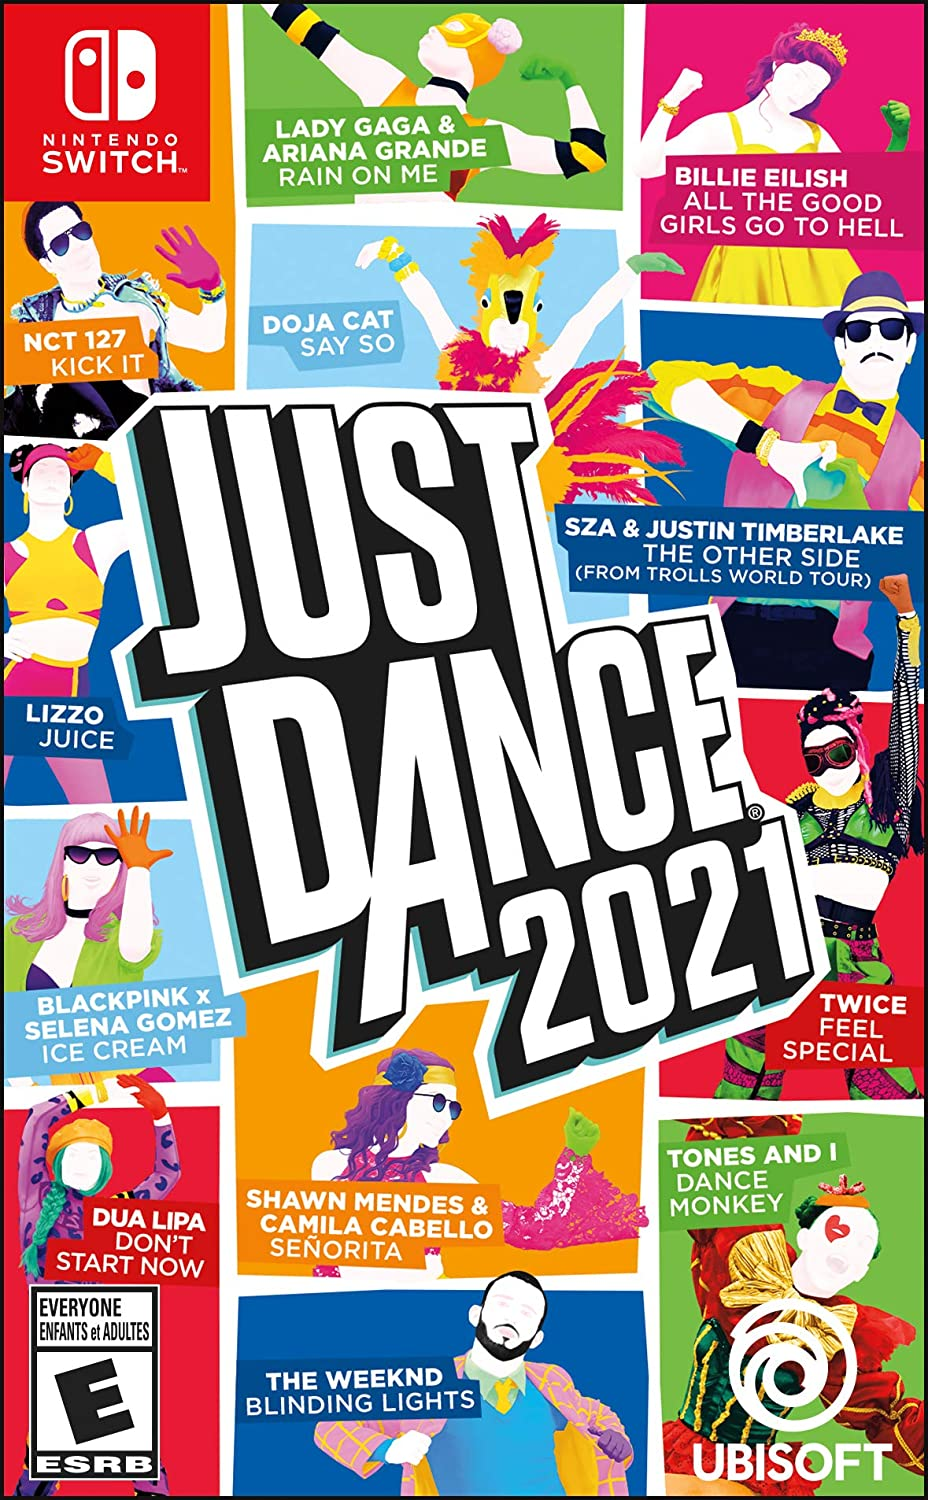 just-dance-is-a-must-for-family-games-2021-3-14